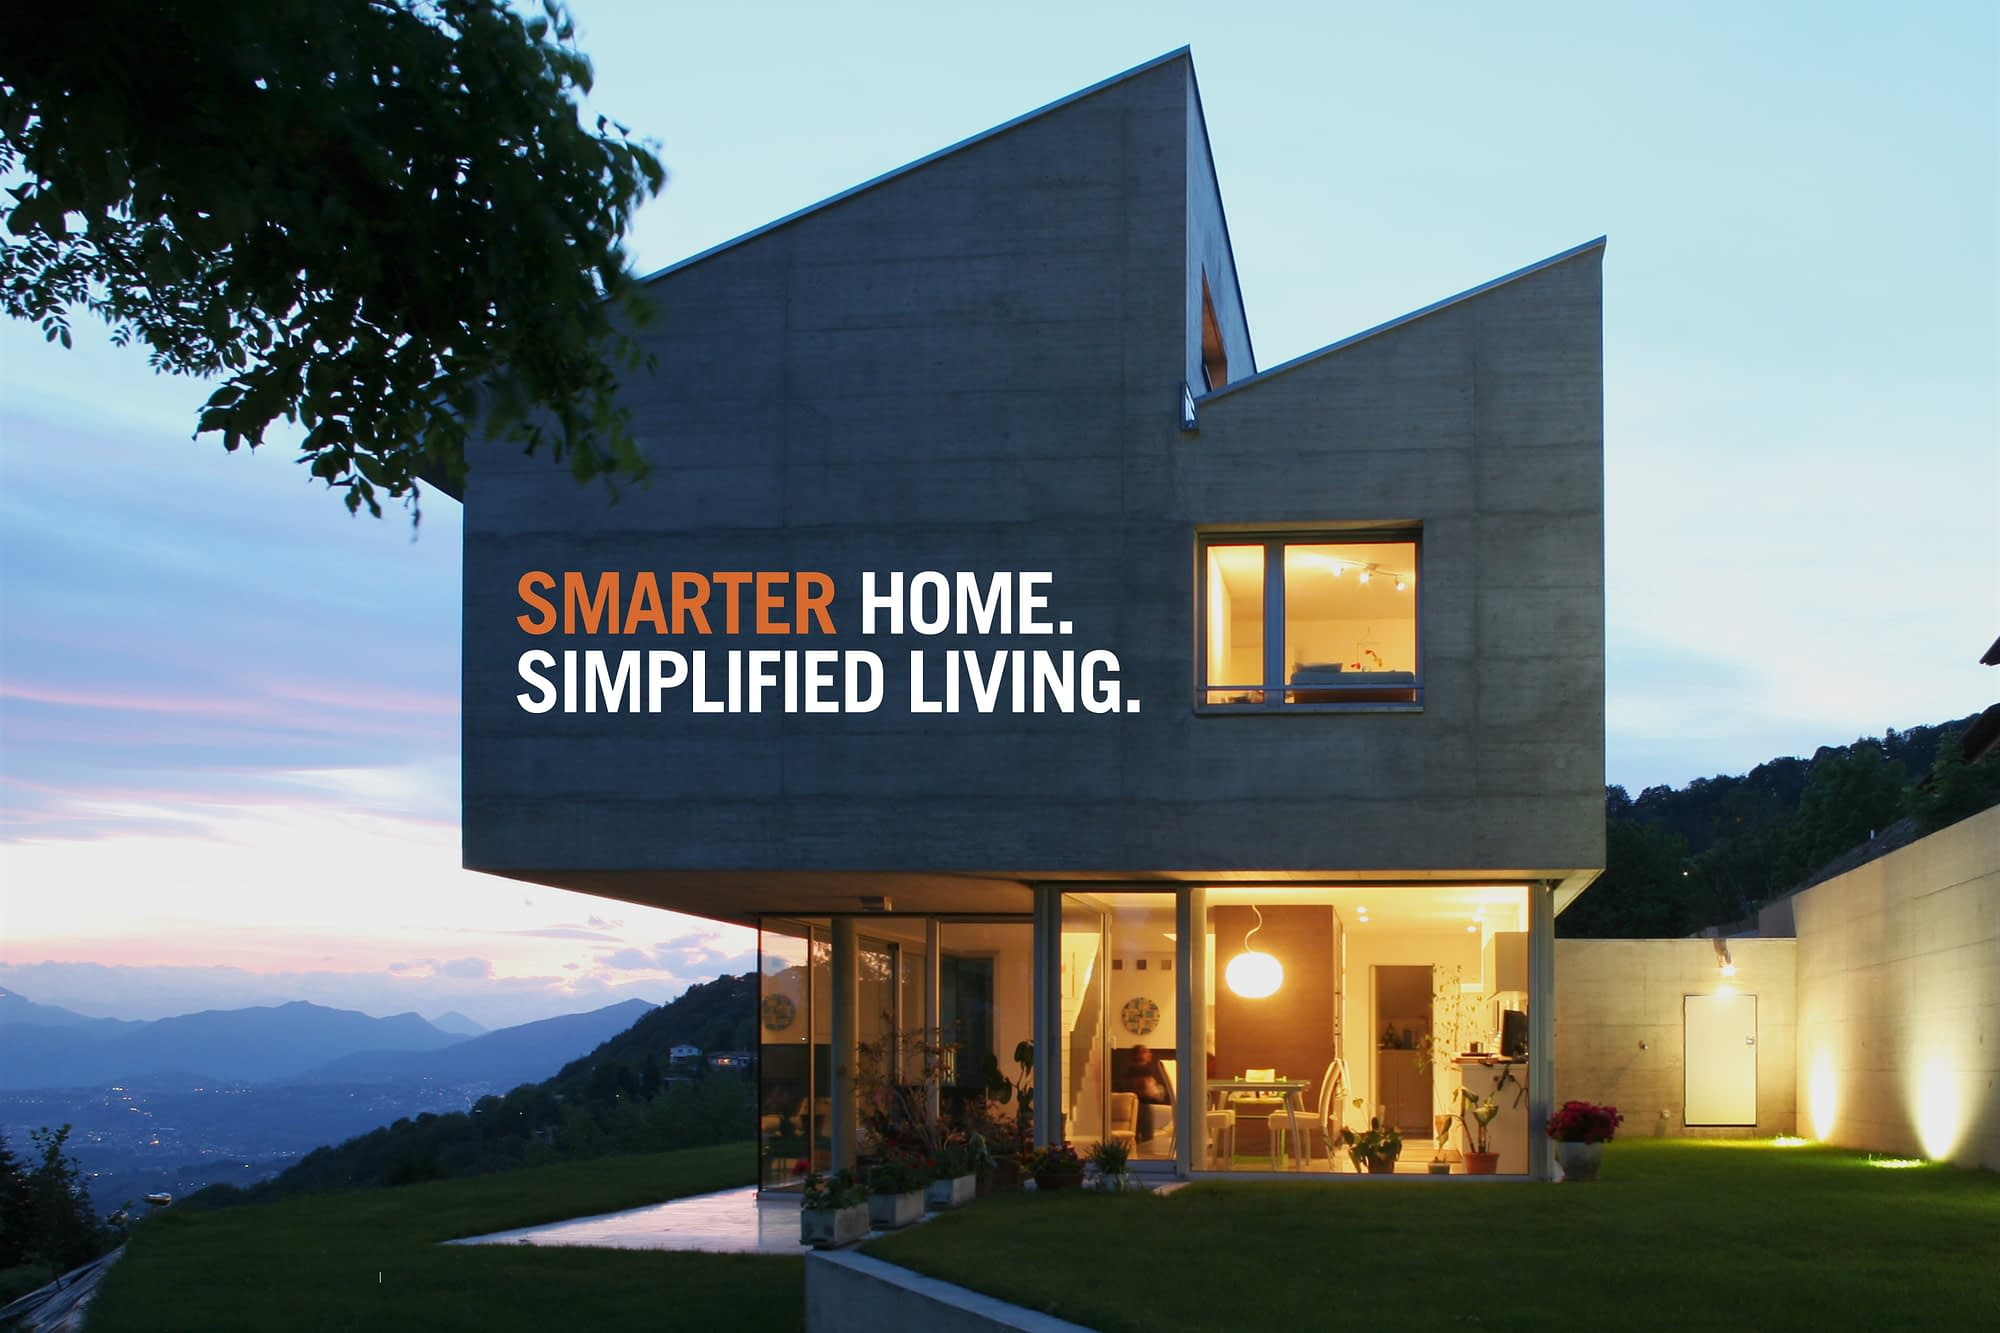 Smarter Home. Simplified Living.